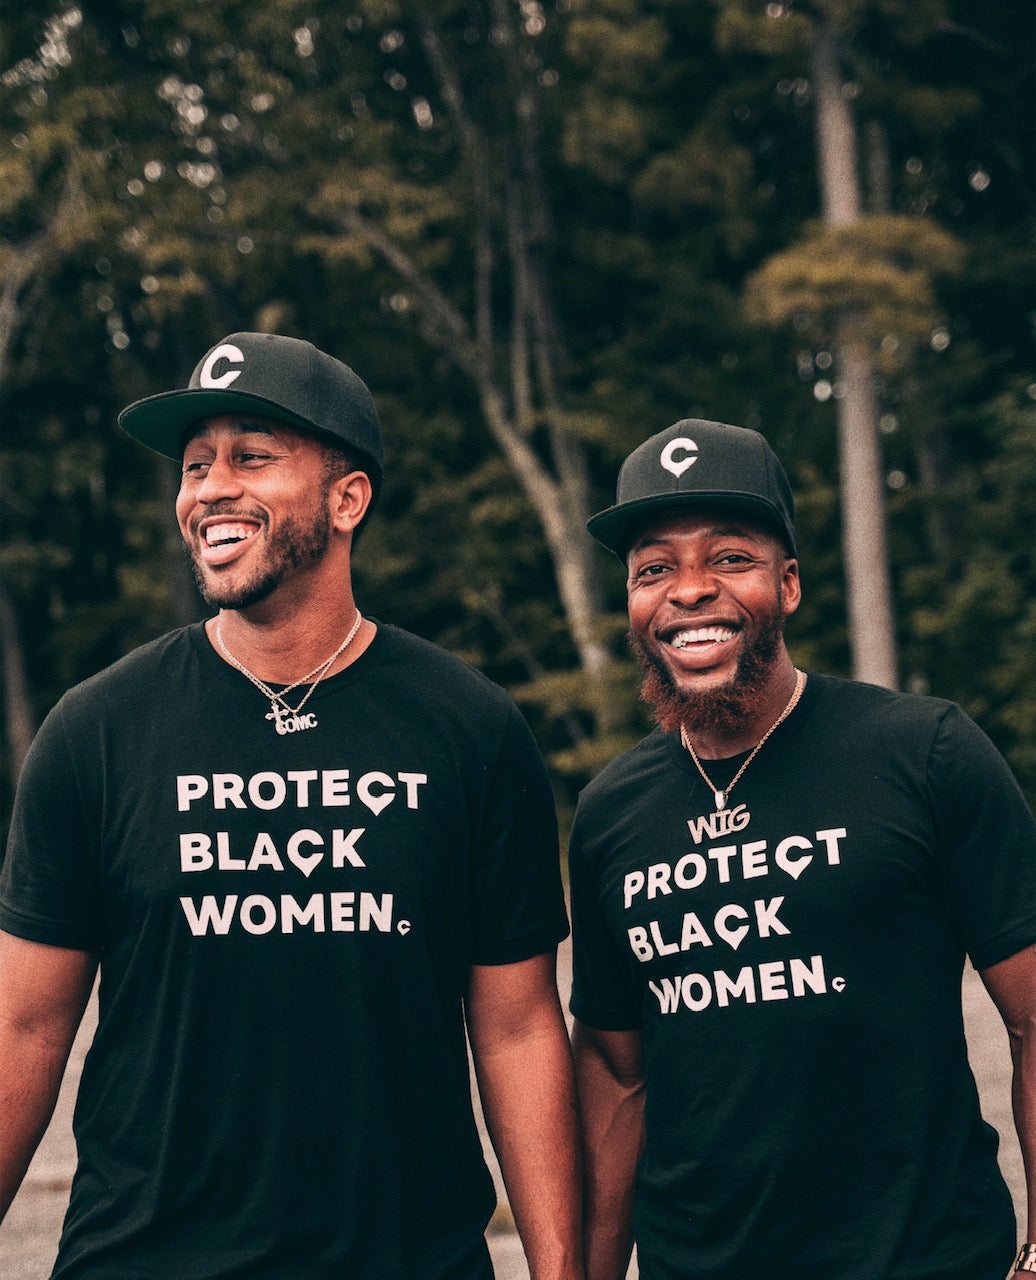 Protect Black Women T-shirt